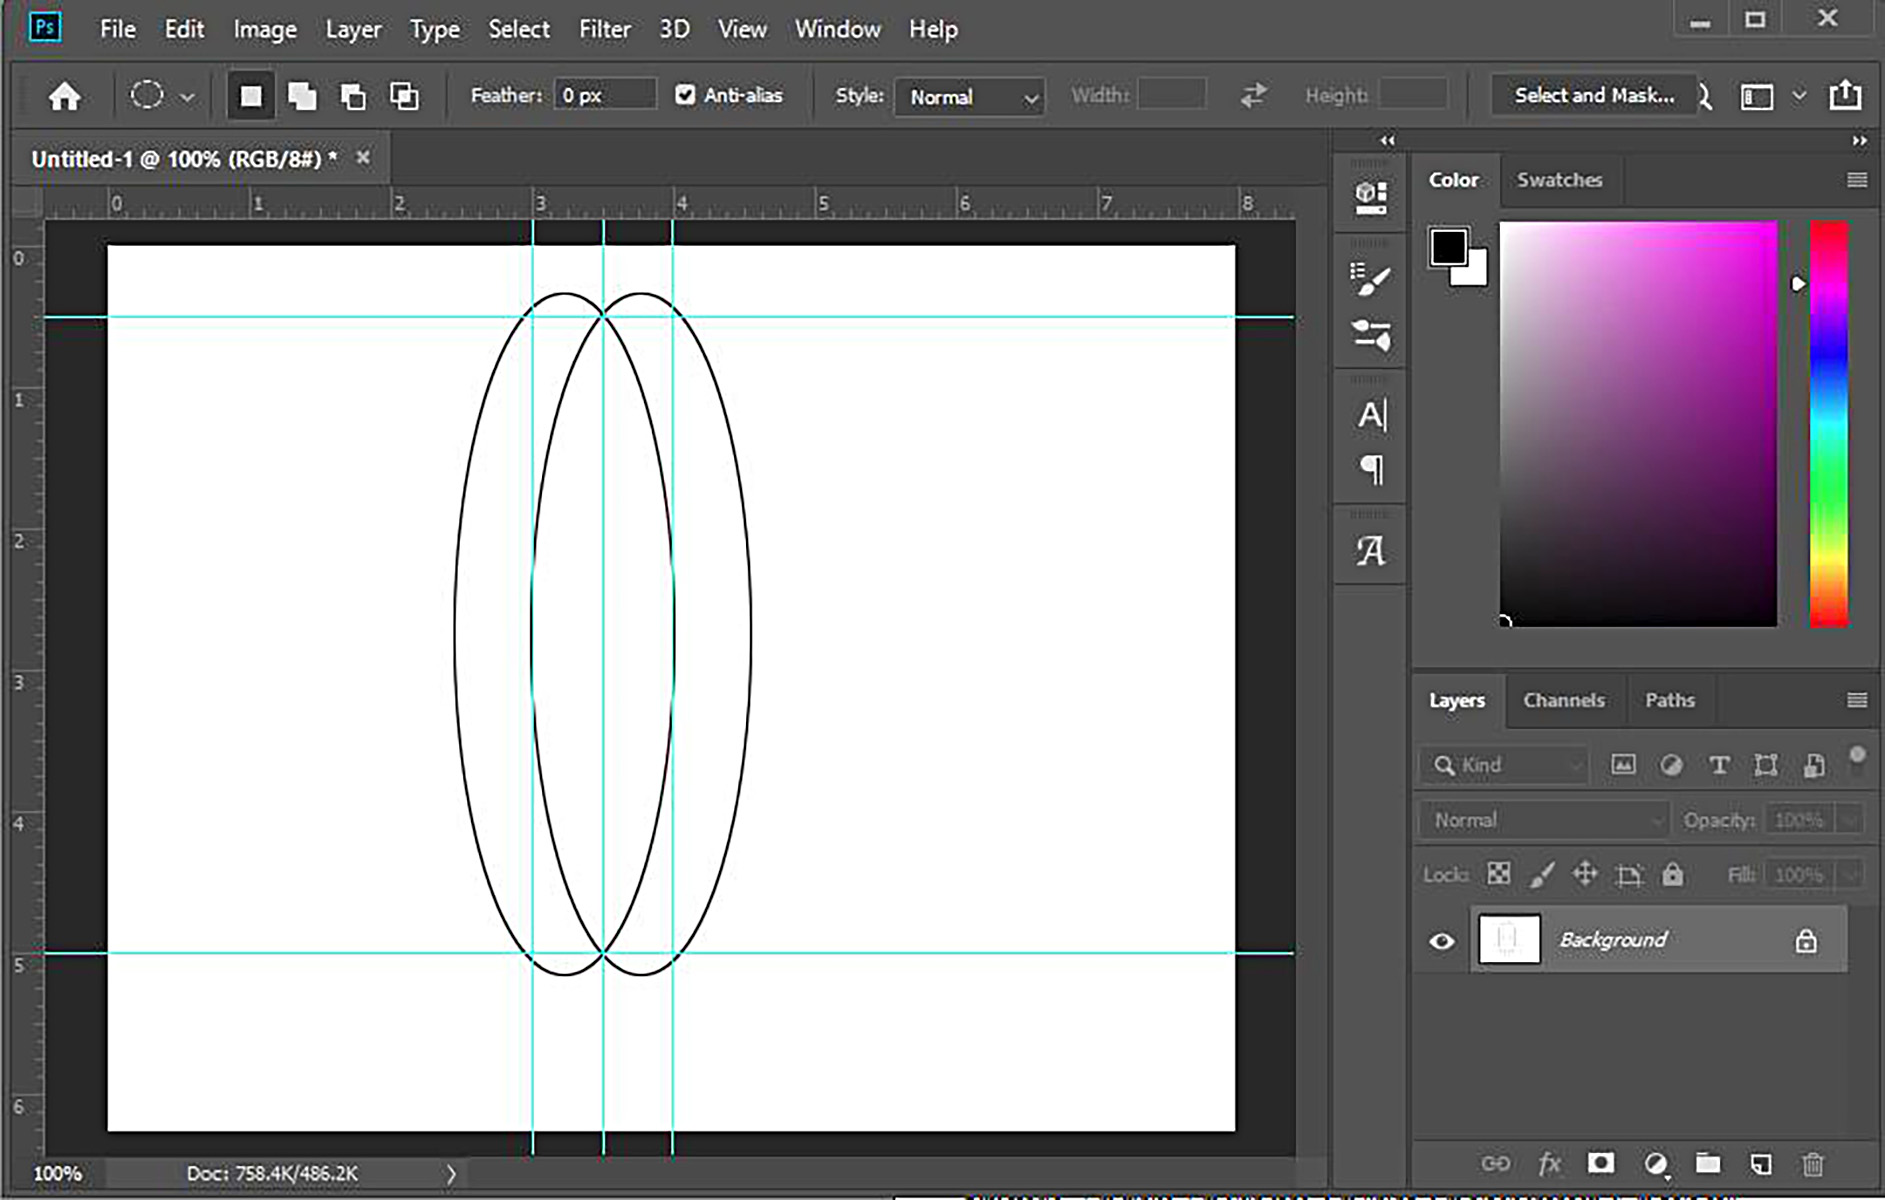 A screen shot of a Photoshop work space, with a pattern for a long, narrow shape being drafted.